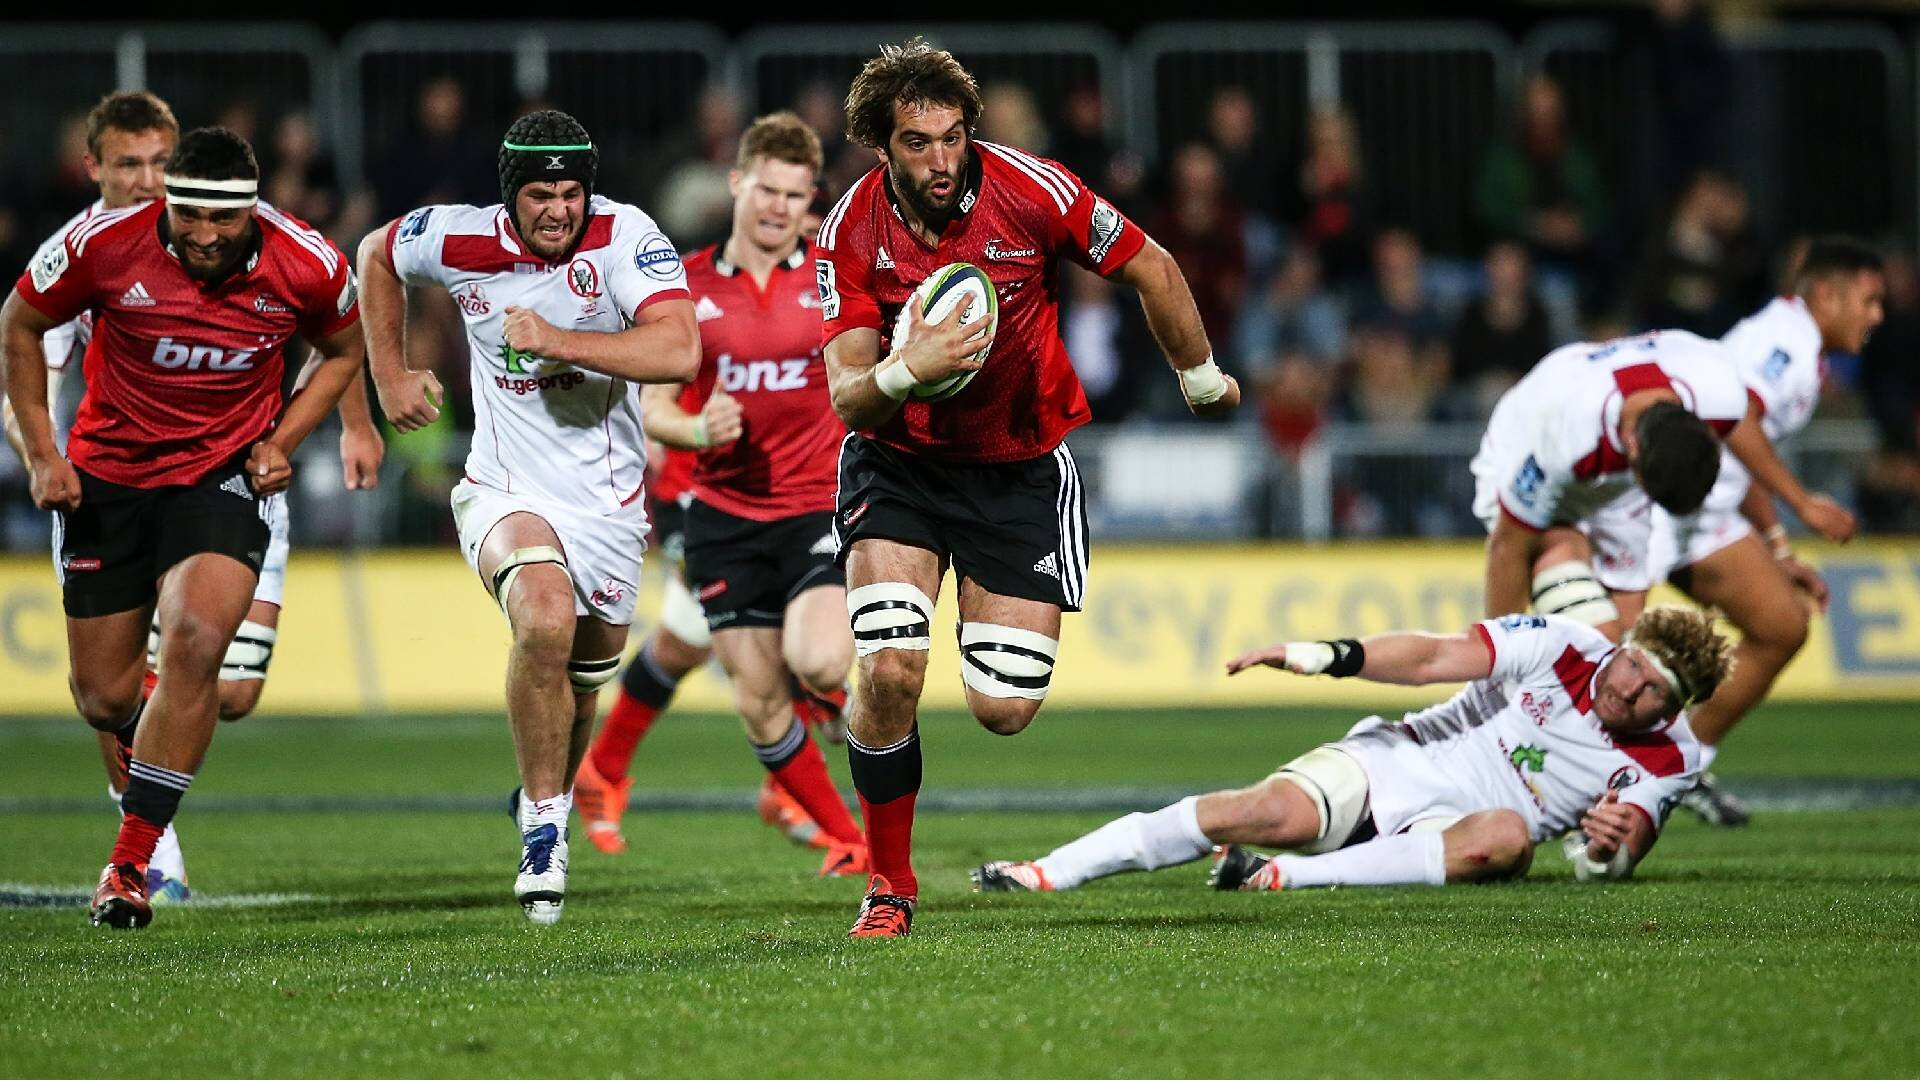 The scarcely believable 60m Sam Whitelock try that had Super Rugby in awe